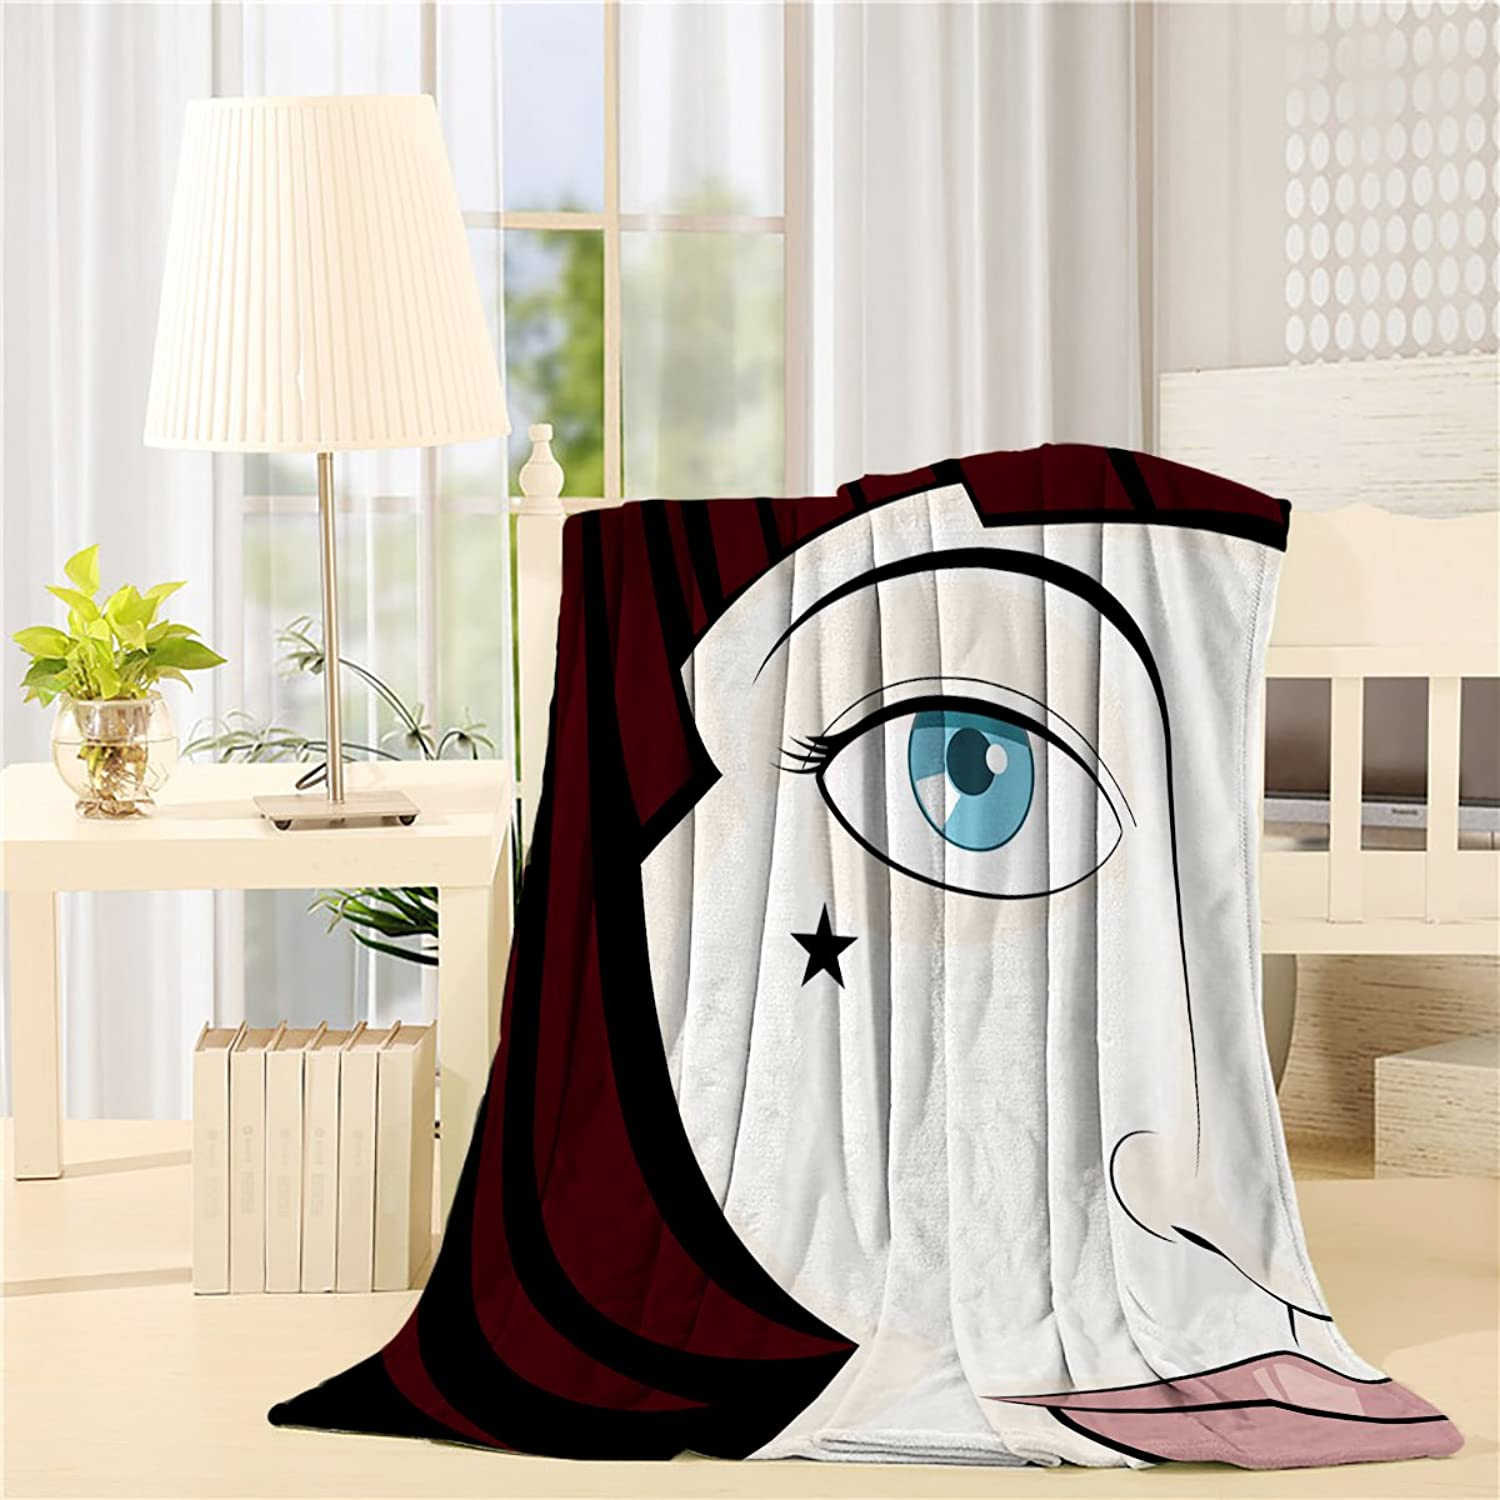 Luxury Extra Soft Throw Blanket Girl Face Printed Flannel Fleece Reversible Blankets Weighted Super Warm Cozy Couch Blanket 40x50Inches